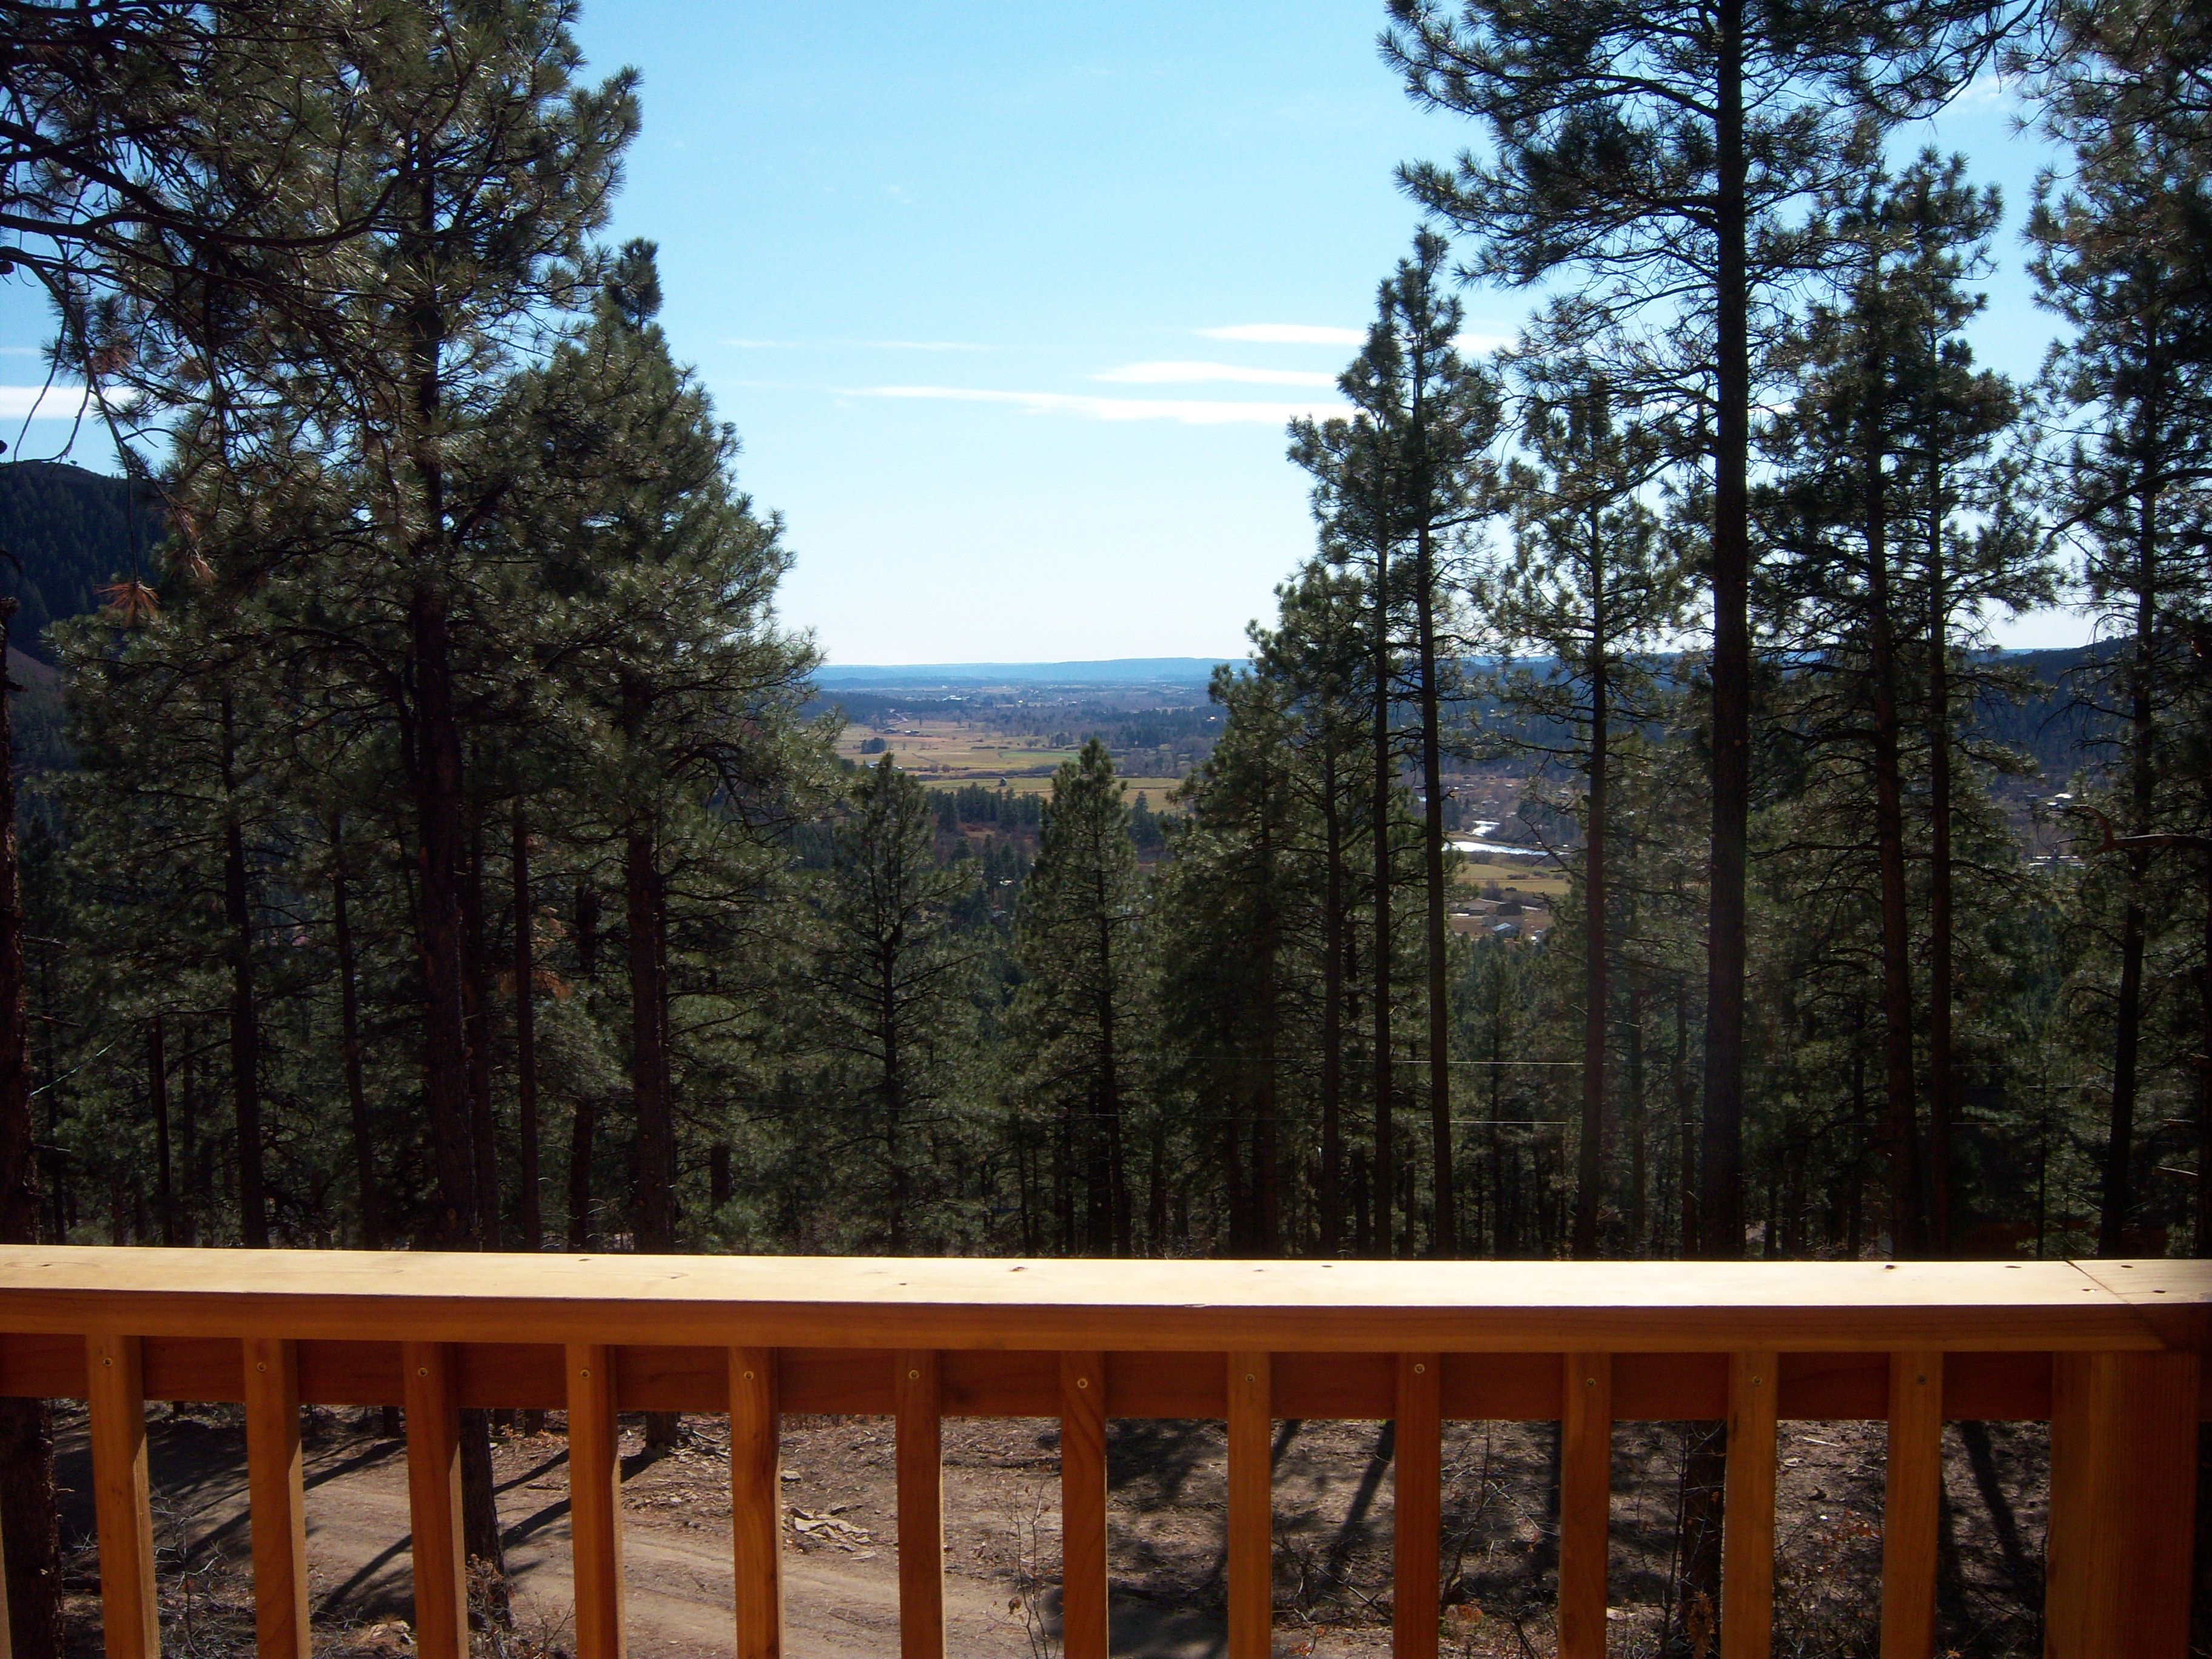 This is the view from our deck in Bayfield, Colorado